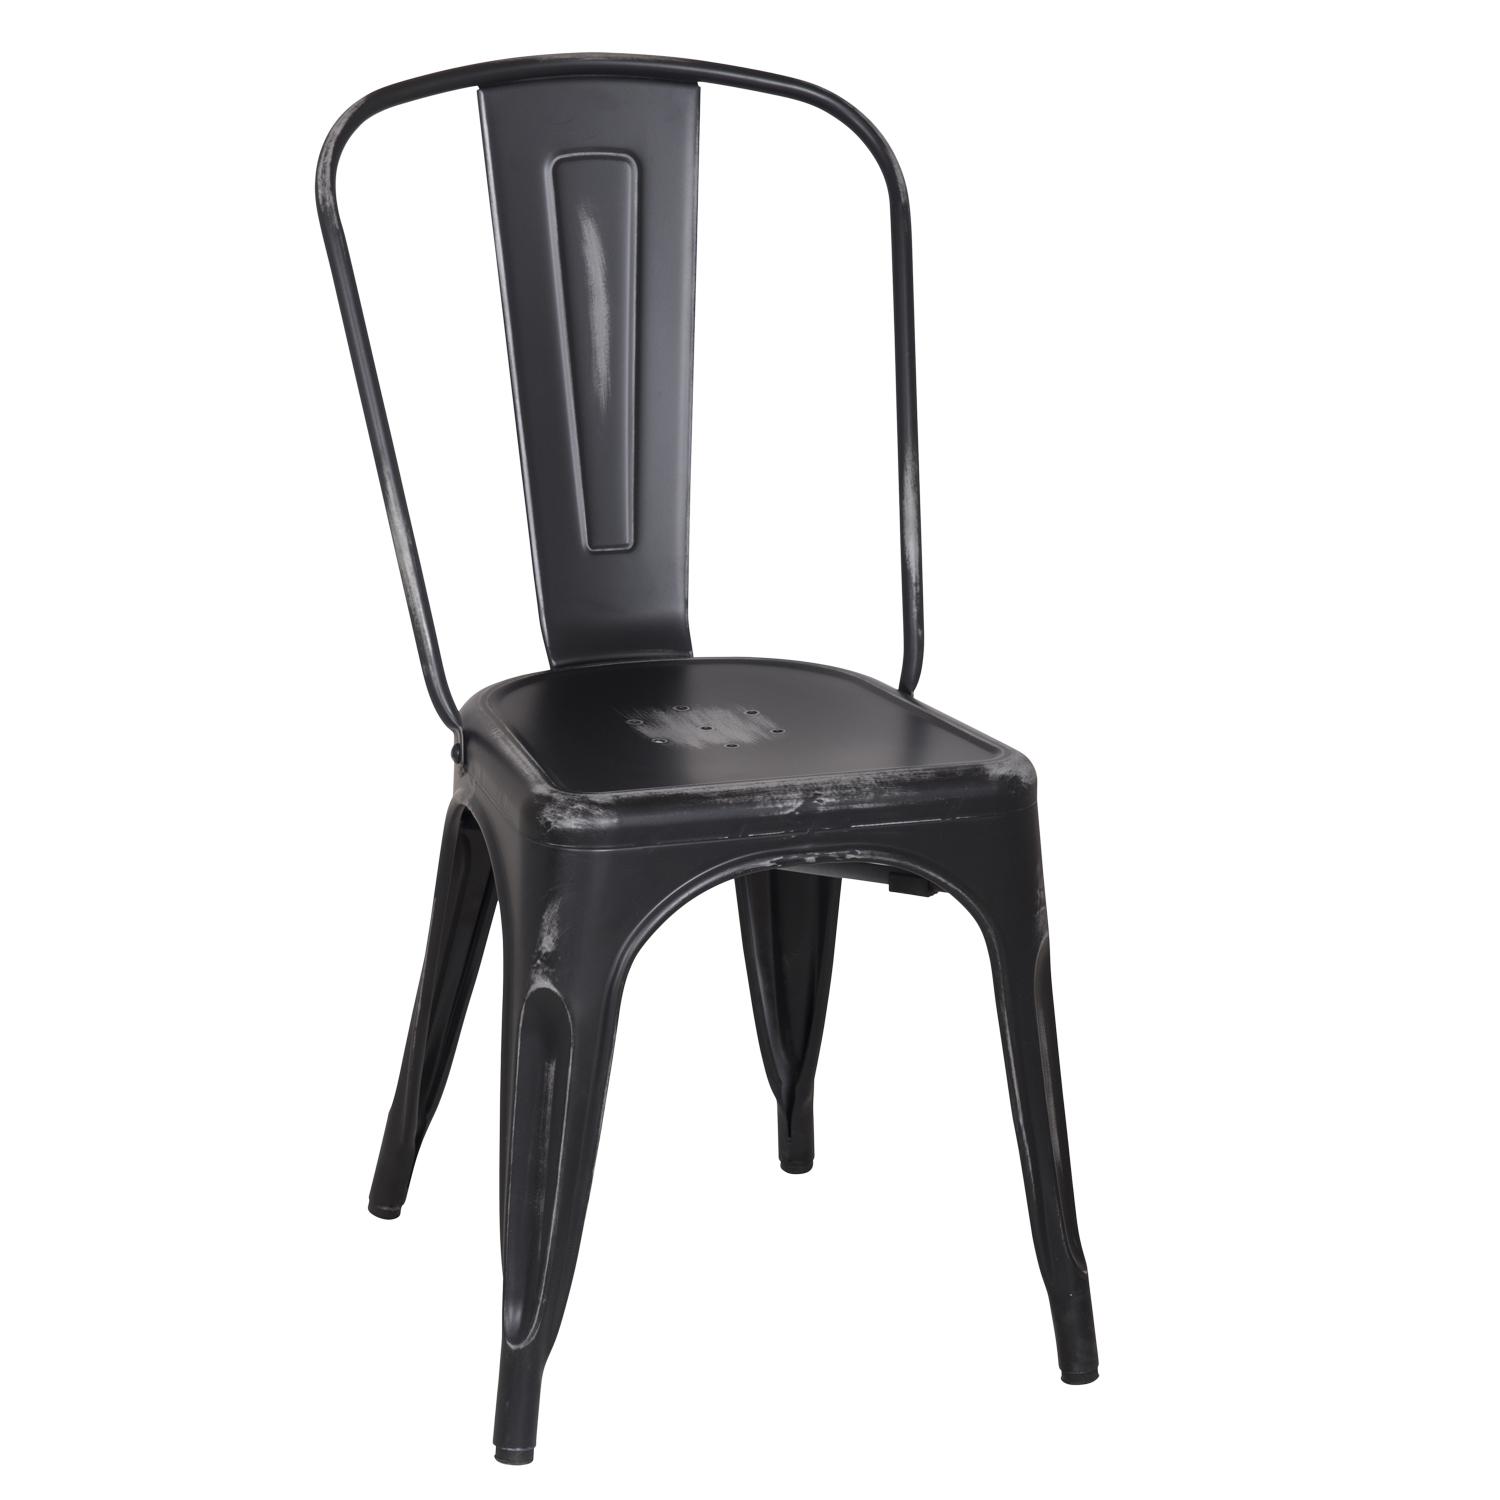 Decenthome Distressed Black Stacking Dining Chairs Ch0280 3 Ach280 3